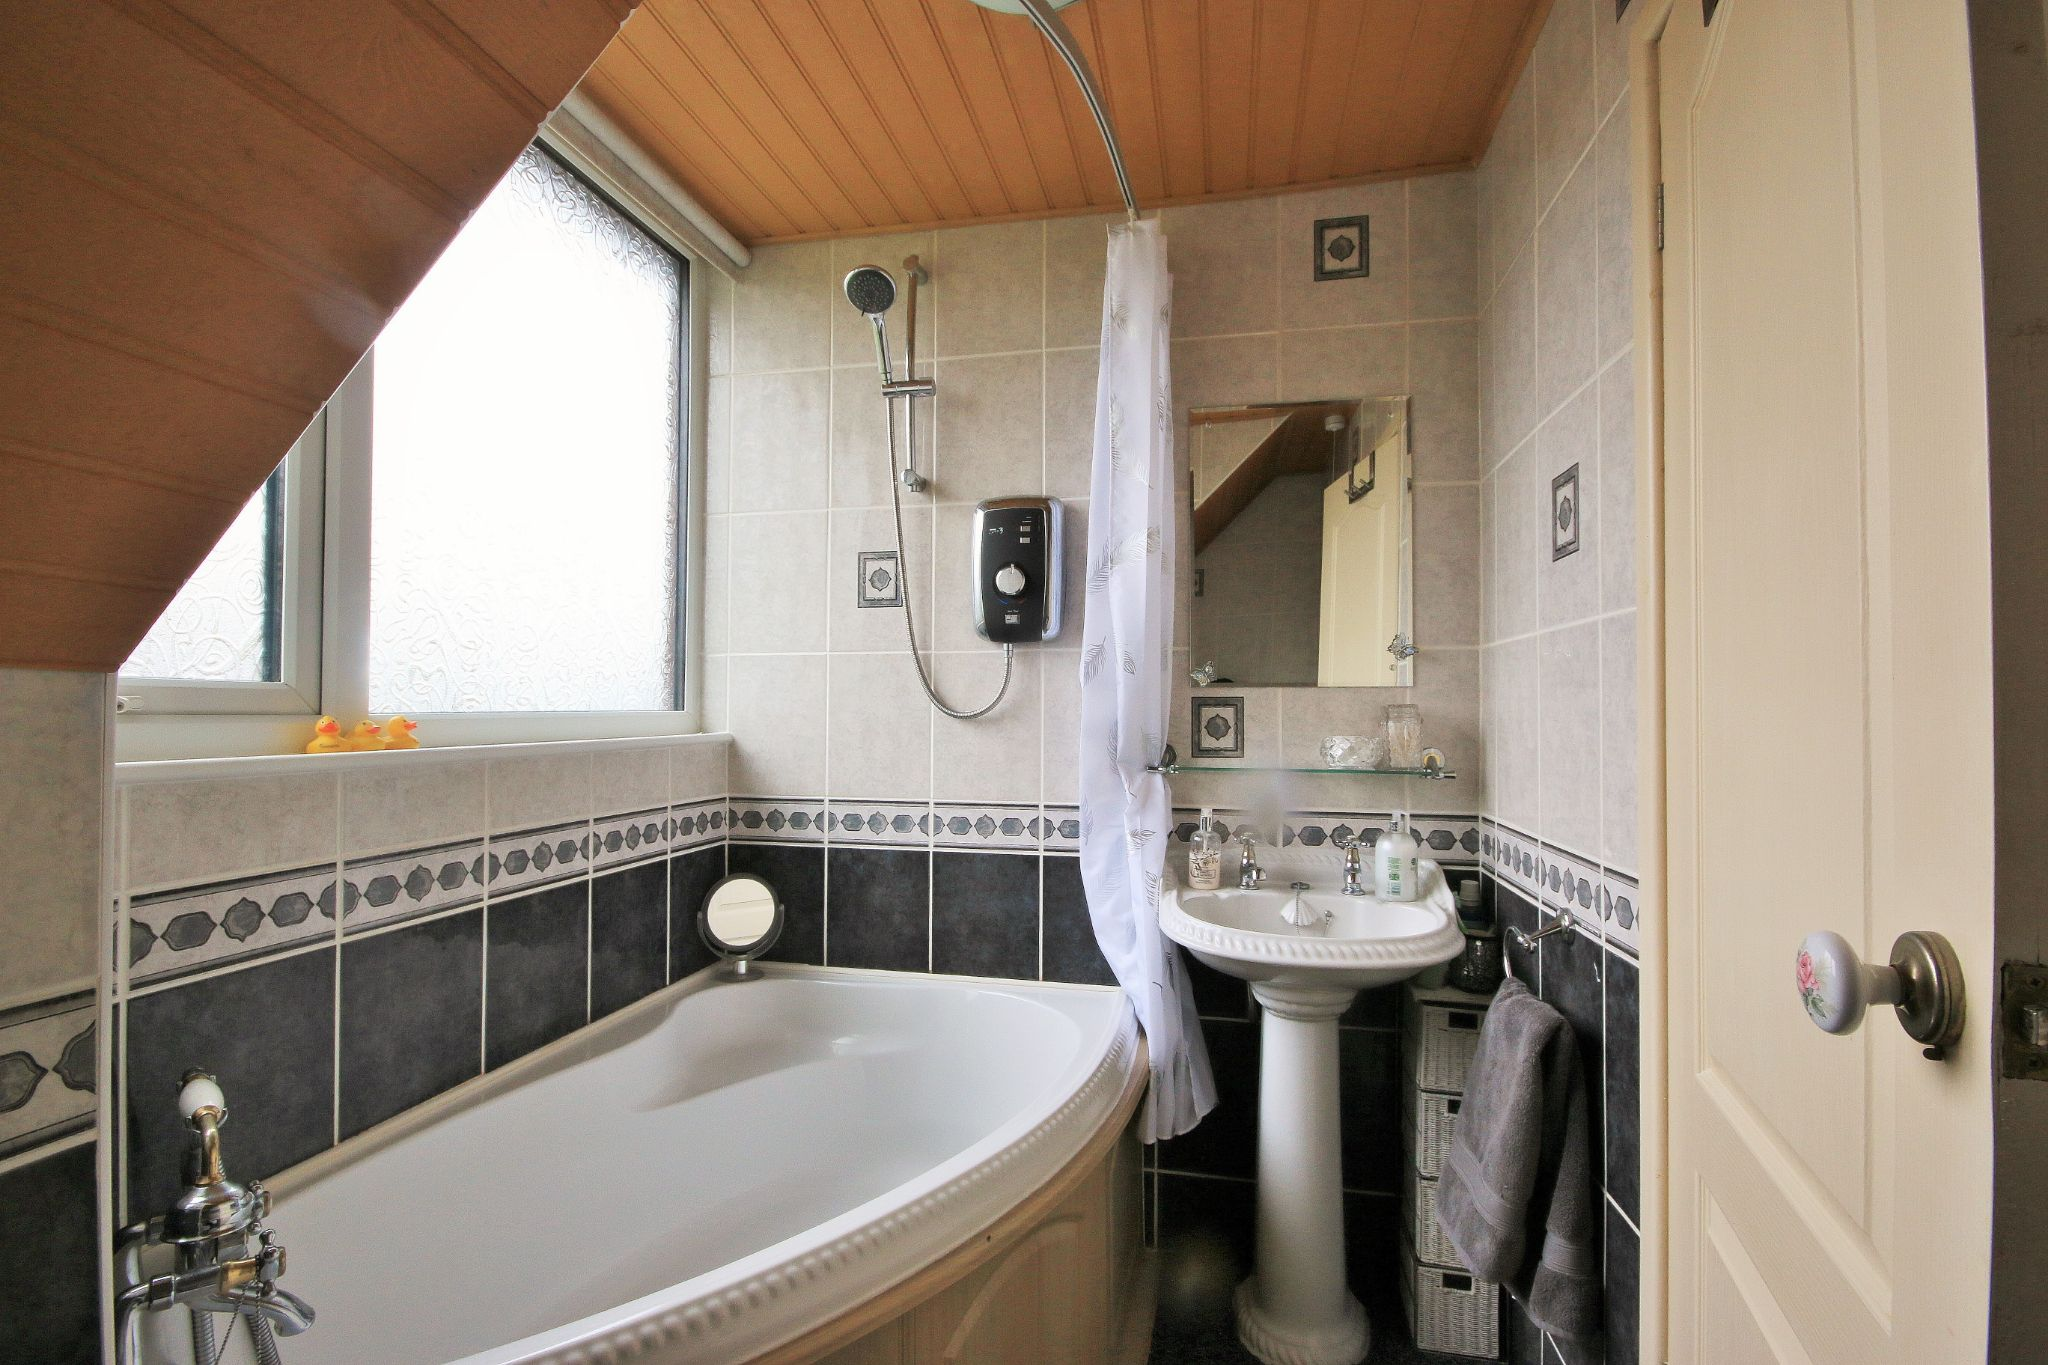 2 Bedroom Detached House For Sale - Photograph 8